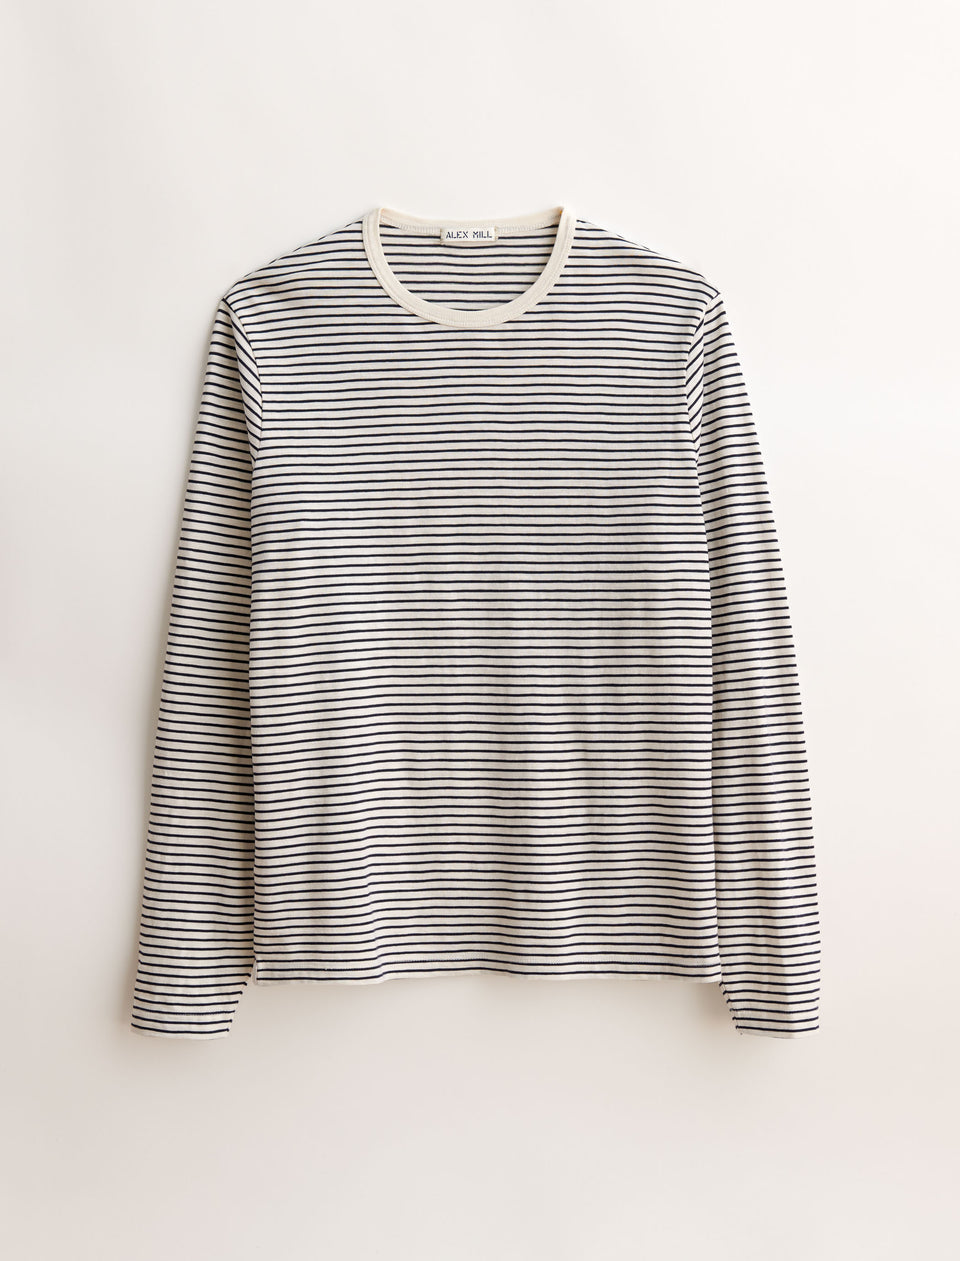 Standard Long Sleeve Striped T-Shirt